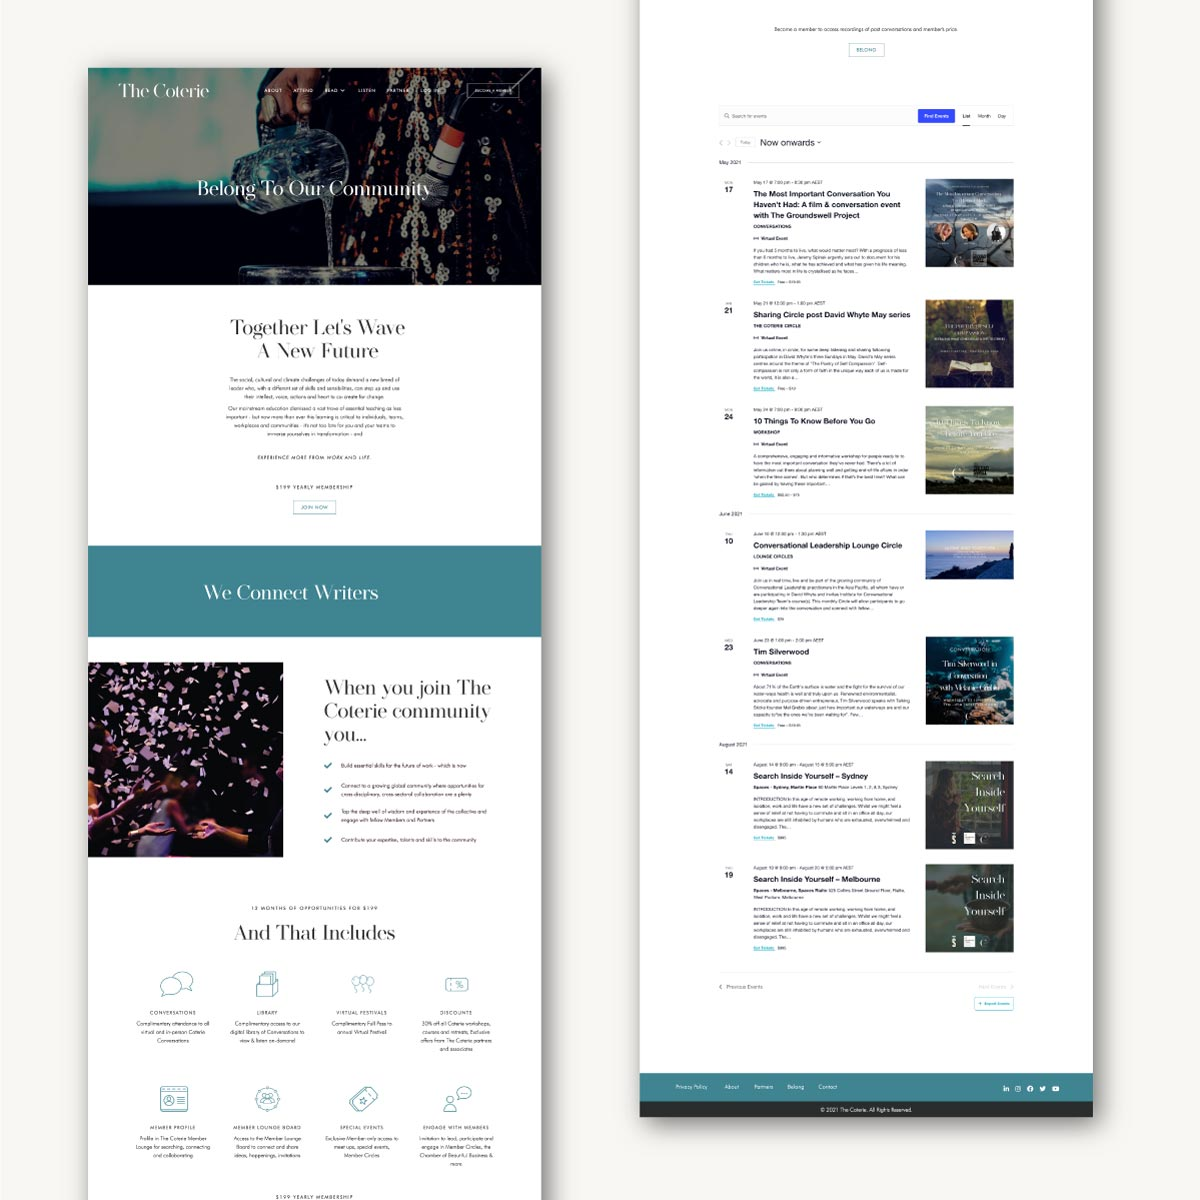 mockup-pages